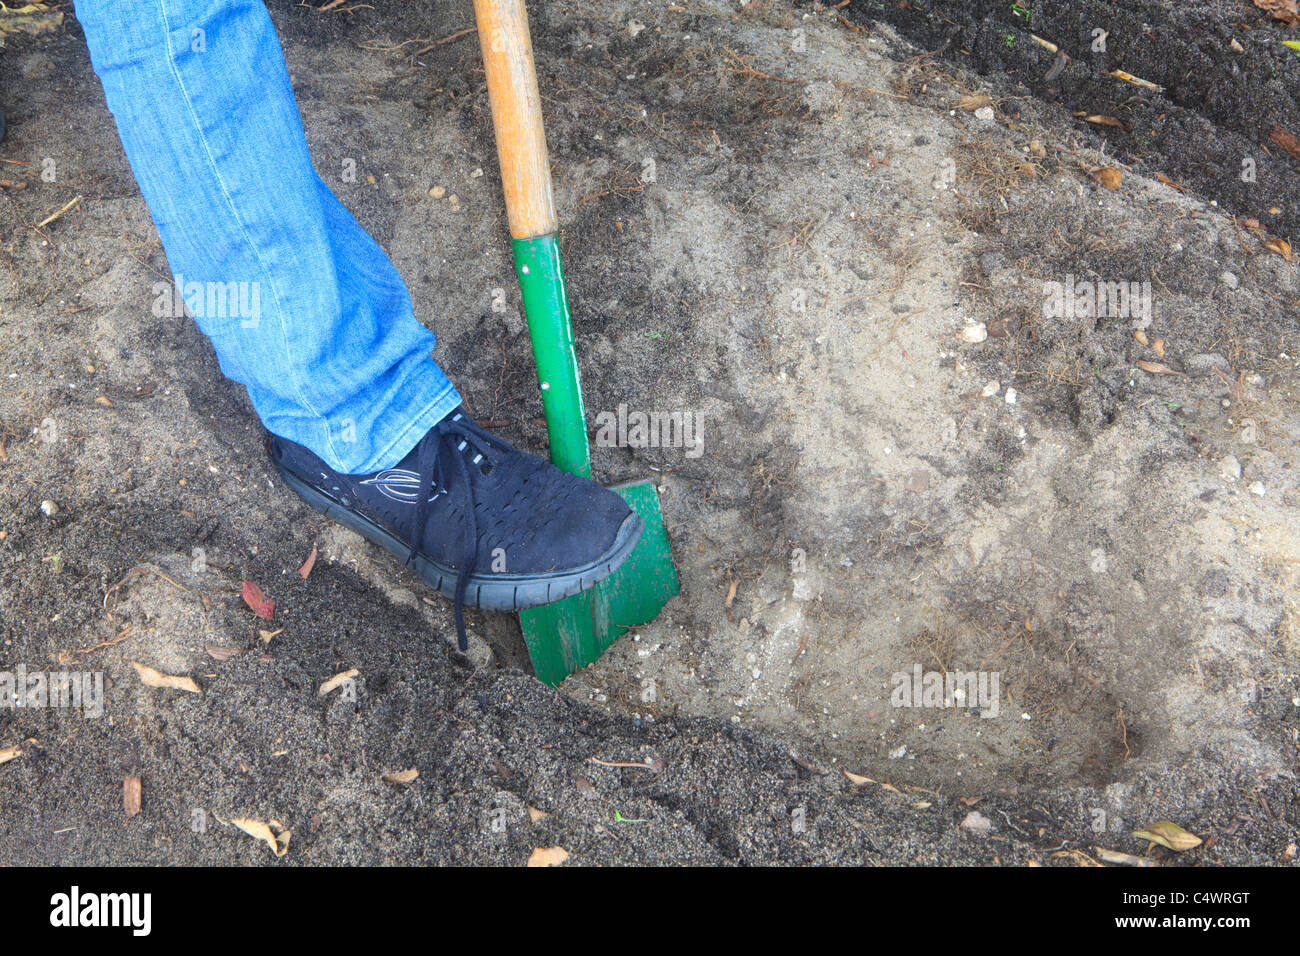 Digging the trench. Part 2 of Trench Composting to improve soil quality series of images. - Stock Image